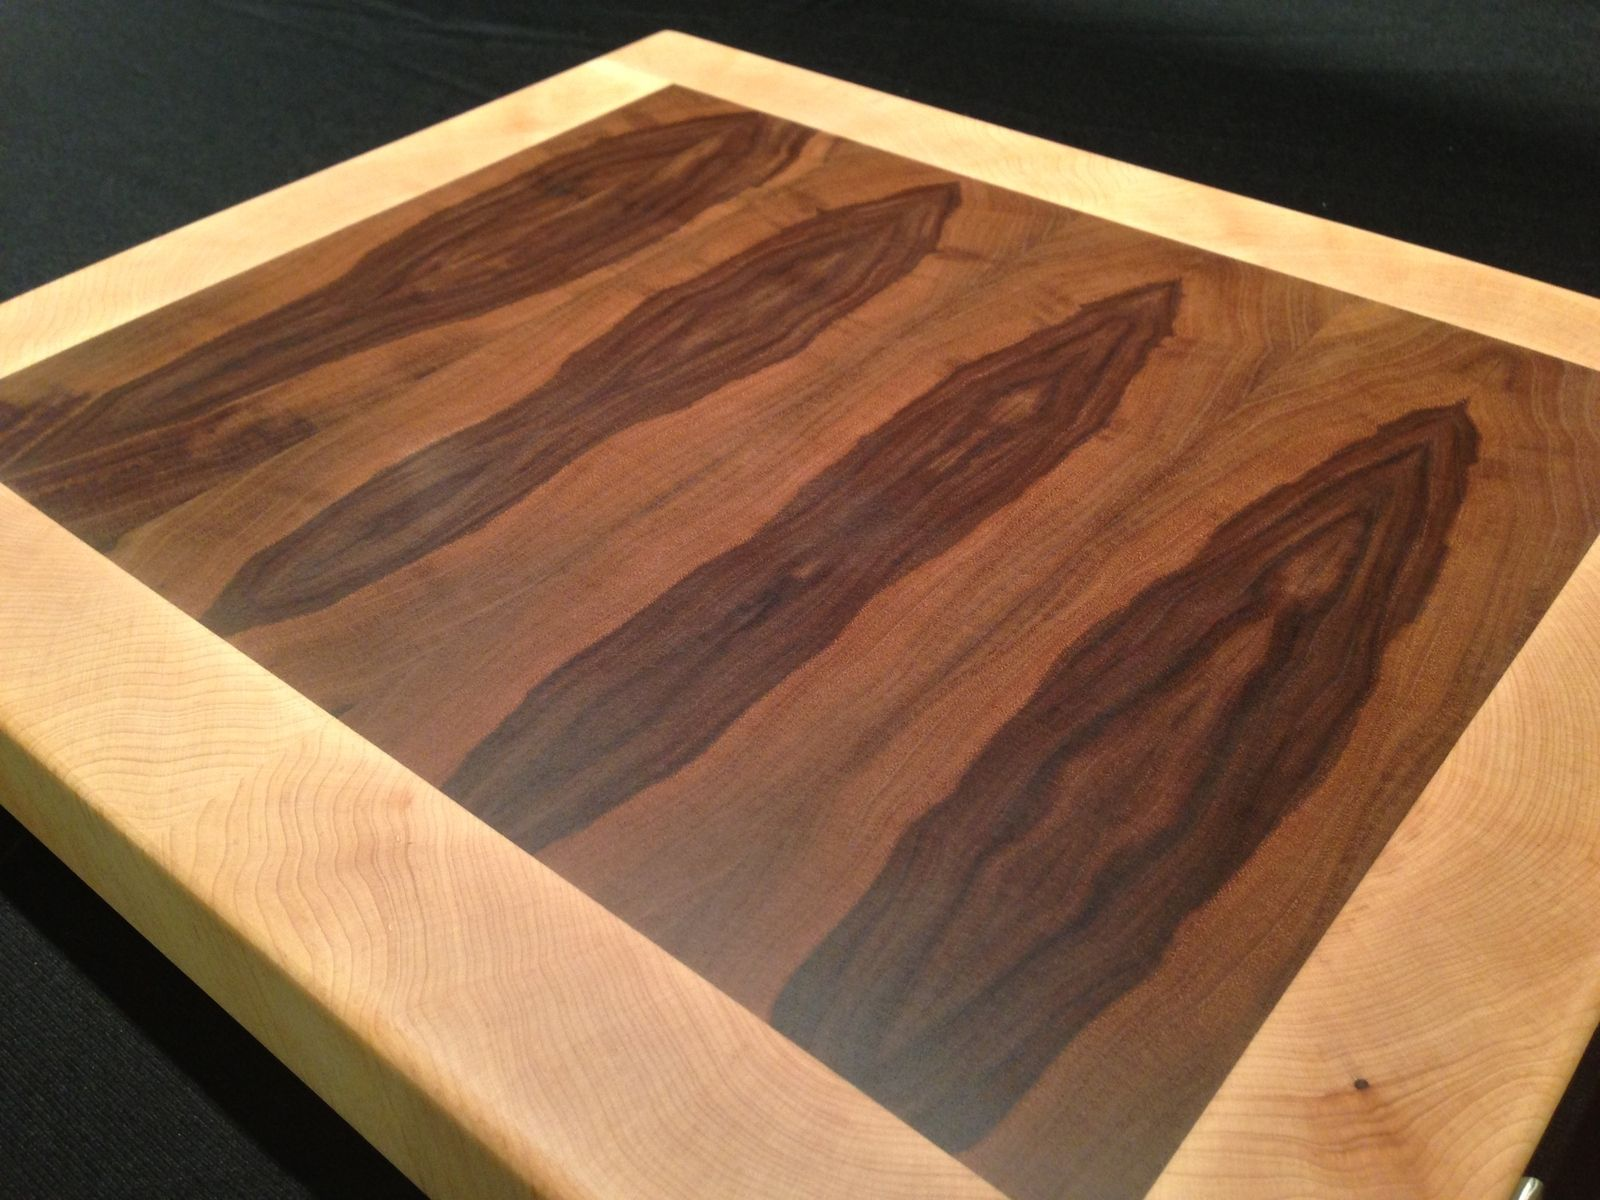 Custom end grain cutting boards by magnolia place for Cutting board designs